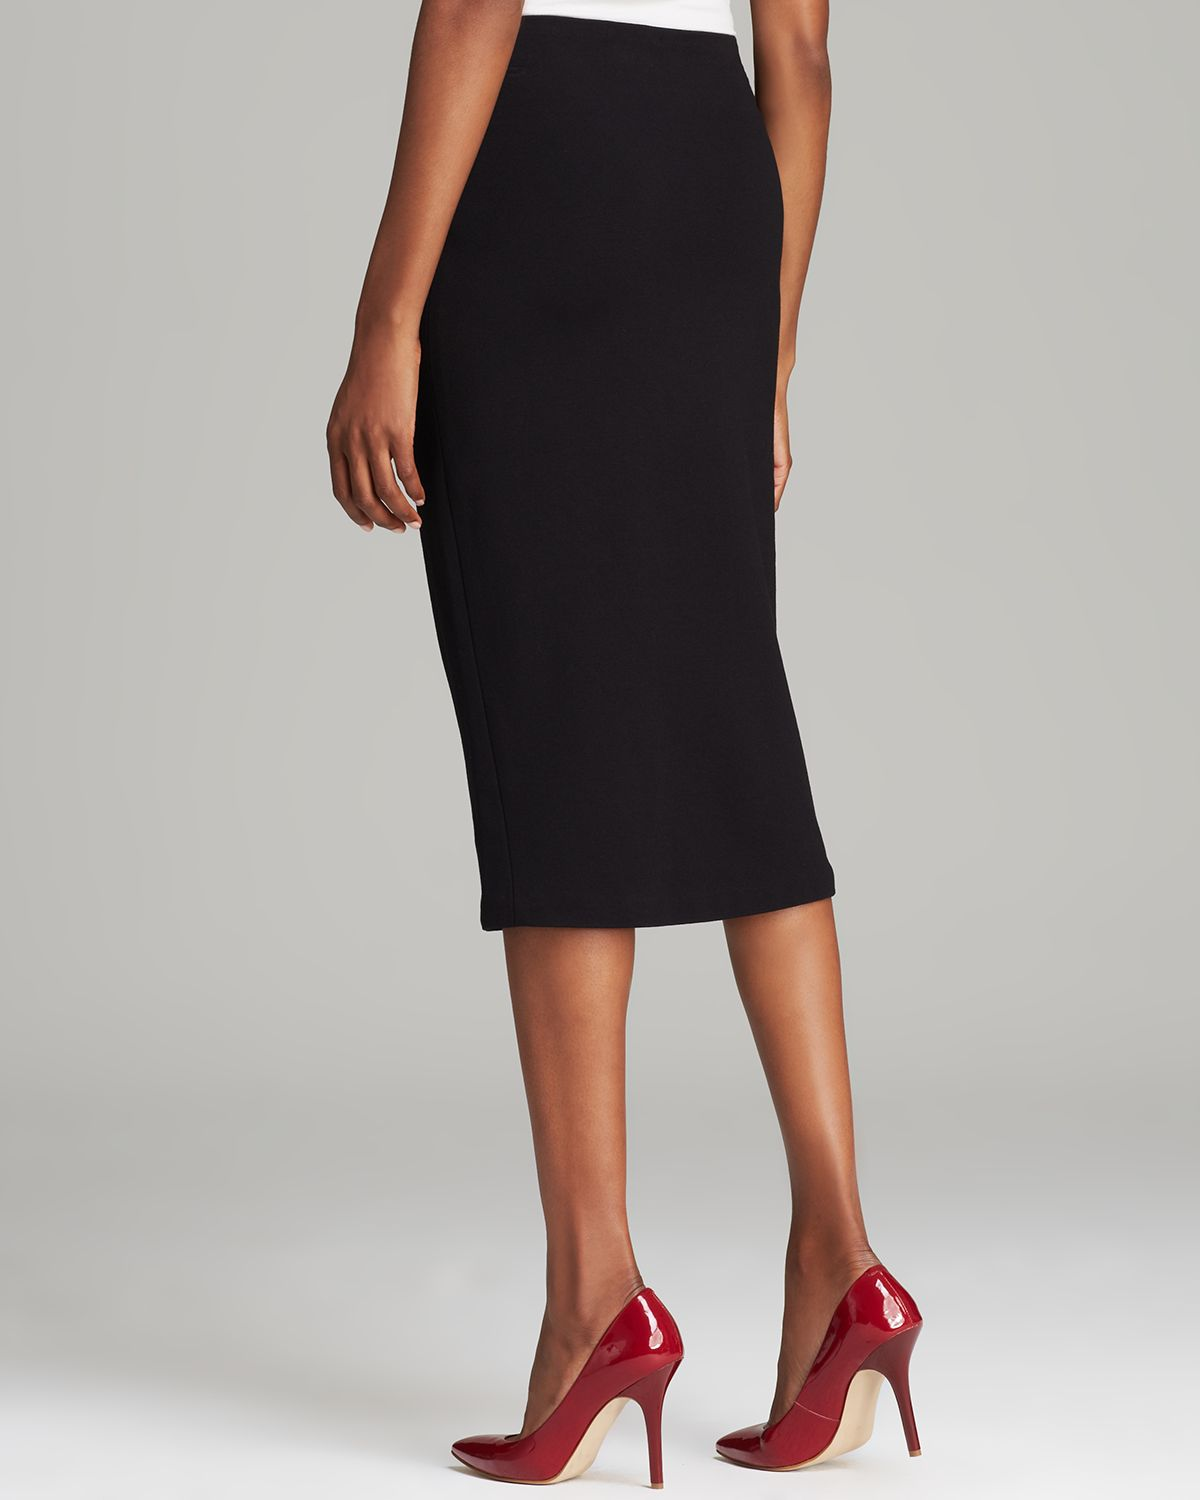 Vince camuto Long Fitted Skirt in Black | Lyst